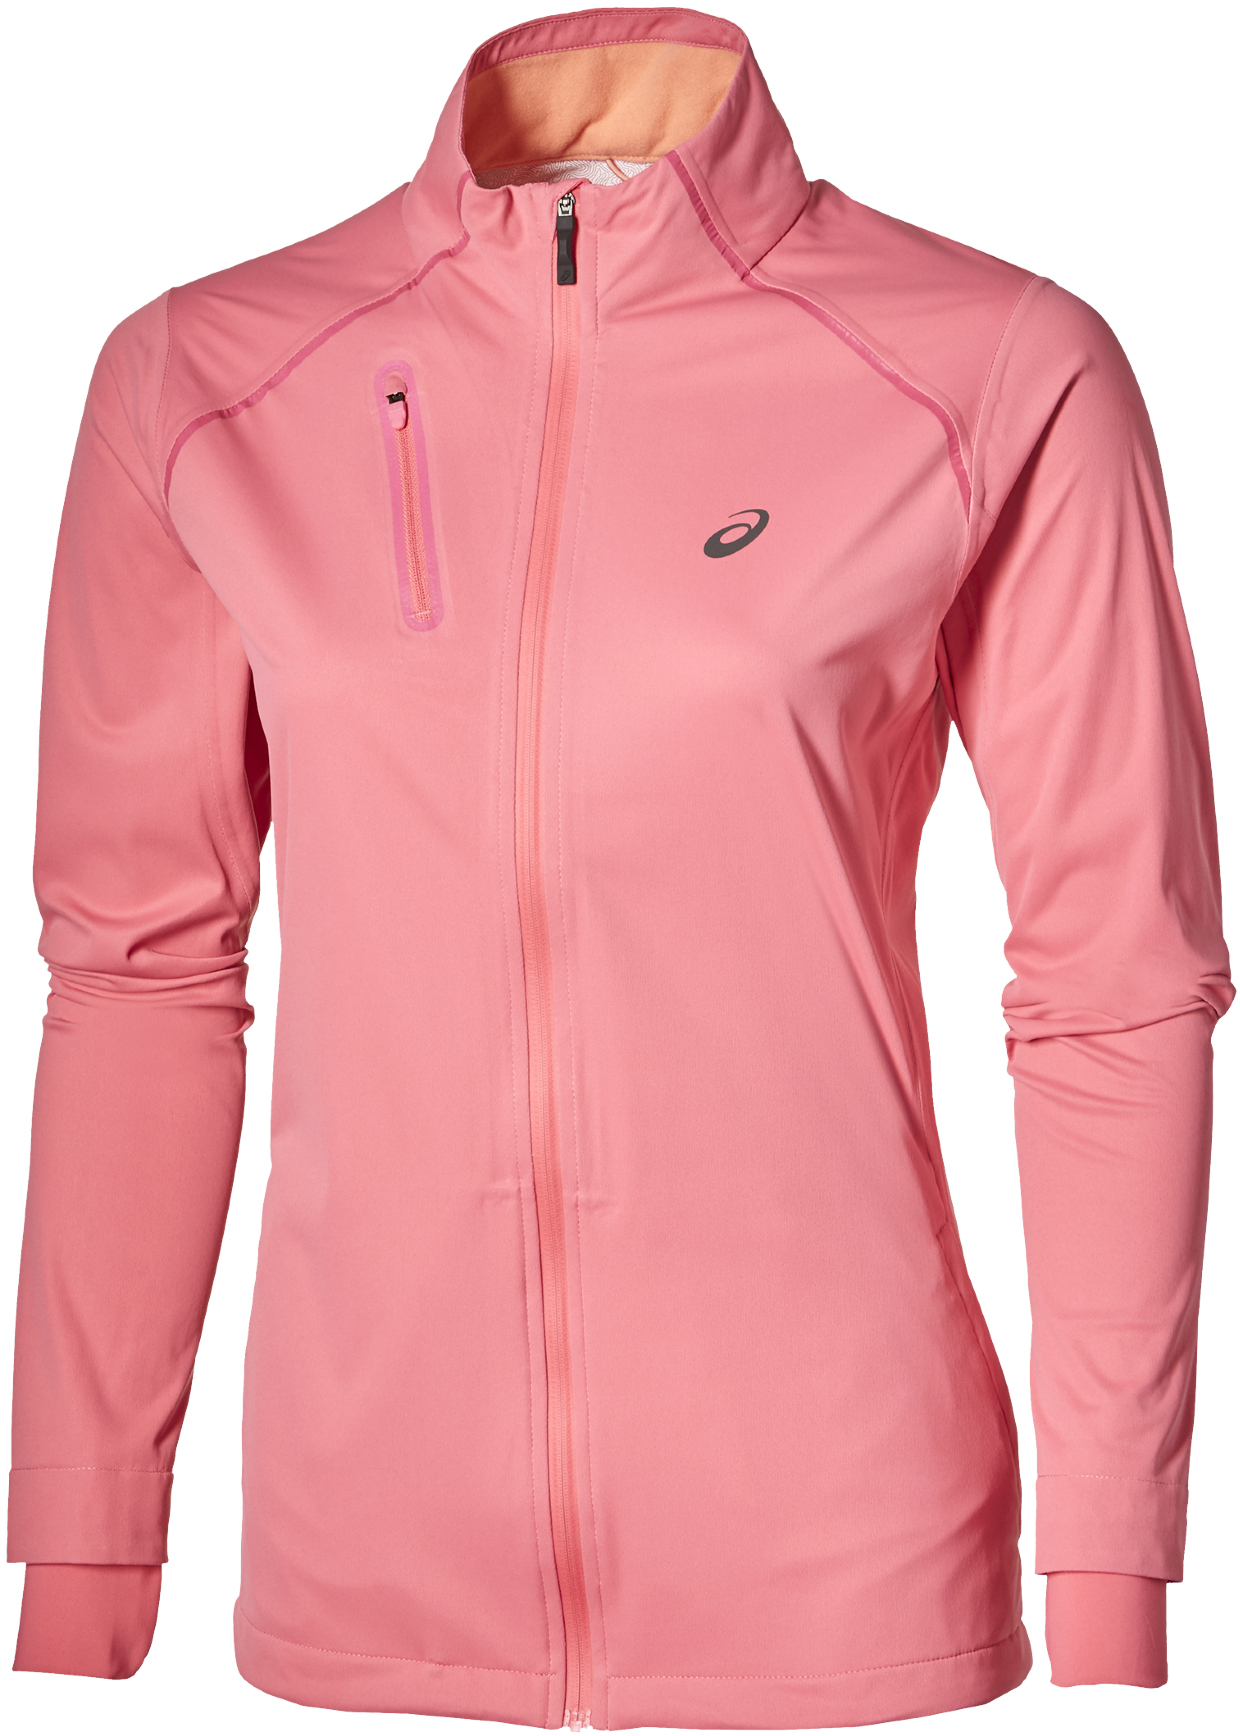 asics running jacket womens Pink